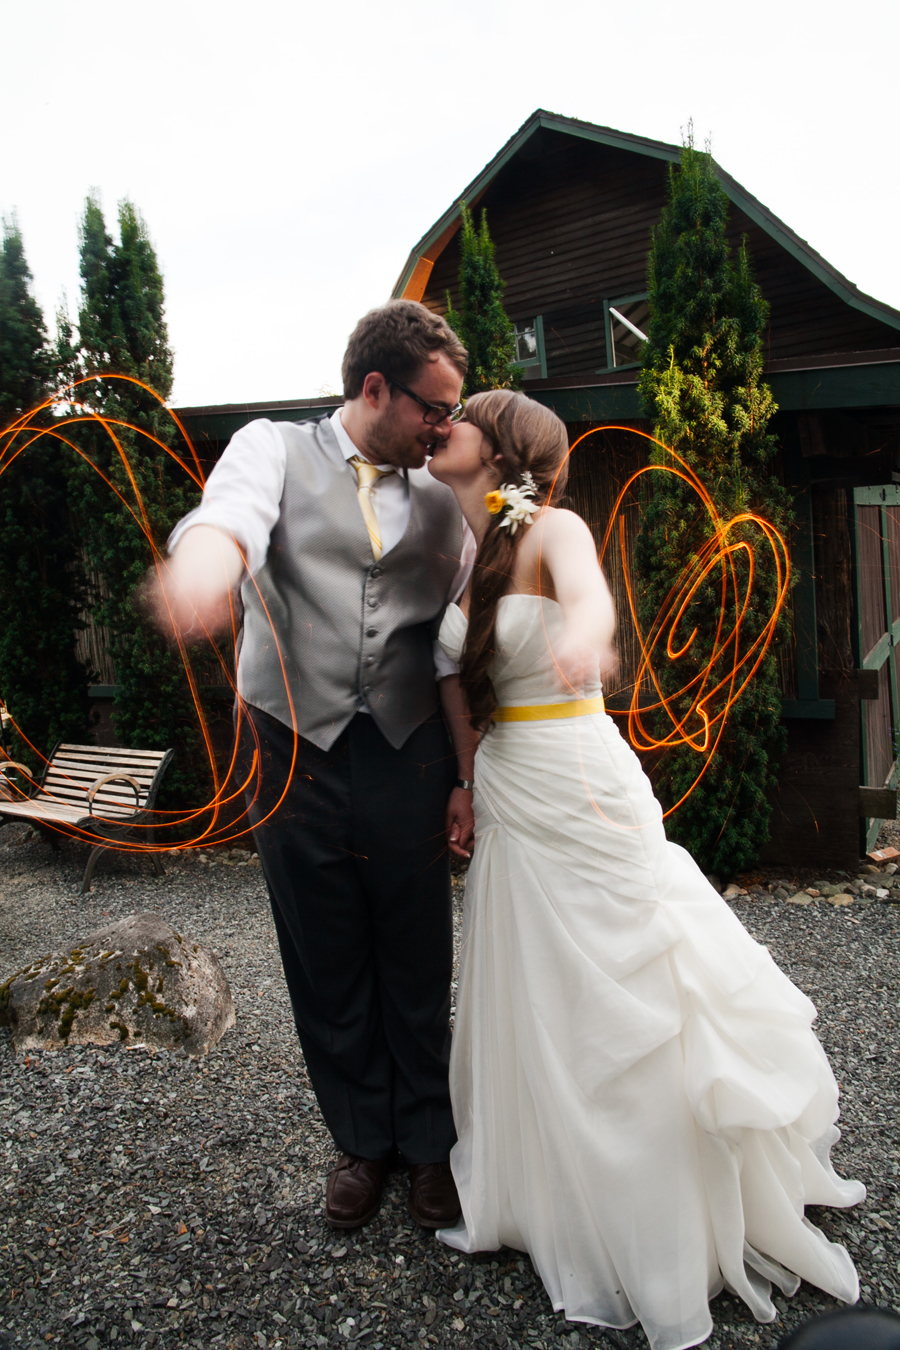 078-jardin-del-sol-snohomish-wedding-2014-august.jpg